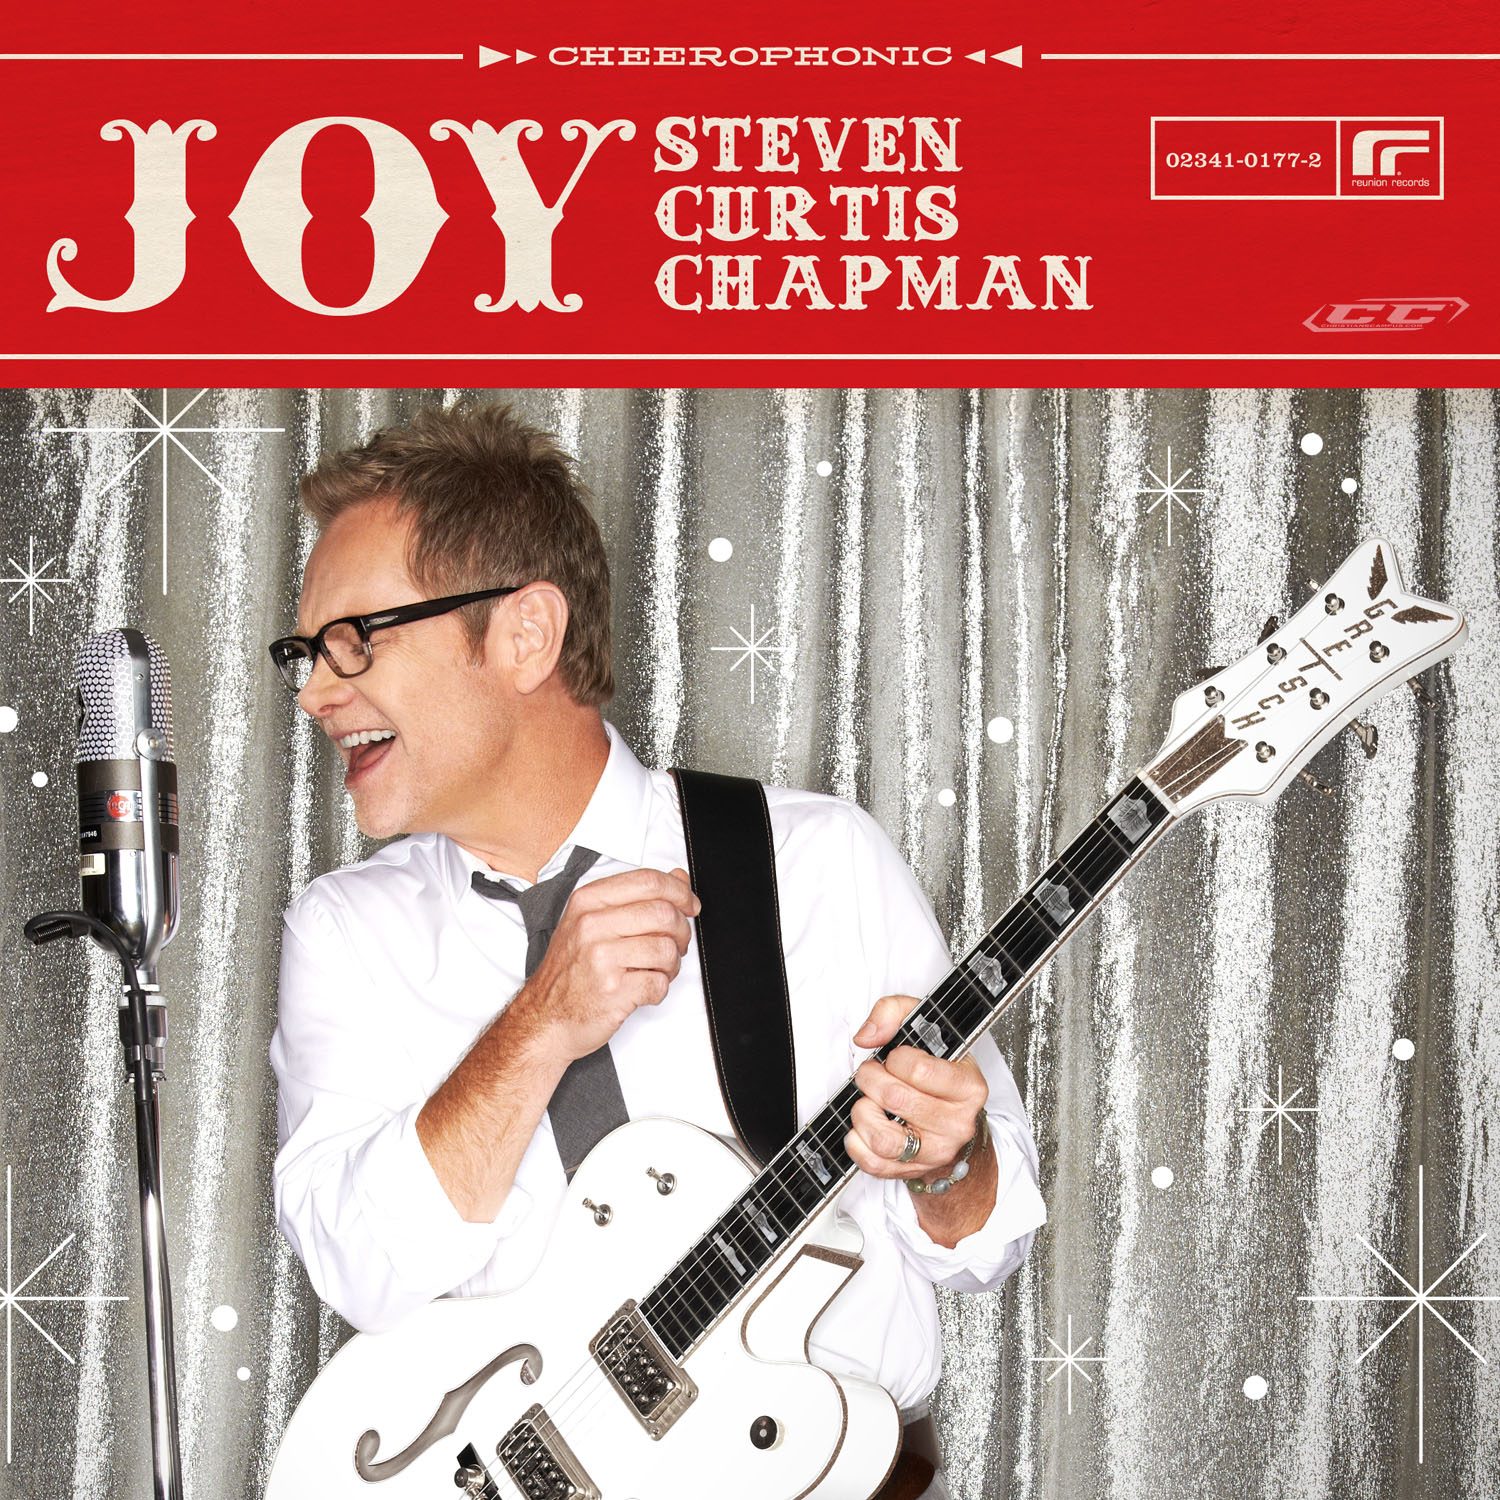 Steven Curtis Chapman - Joy 2012 English Christian Christmas Album